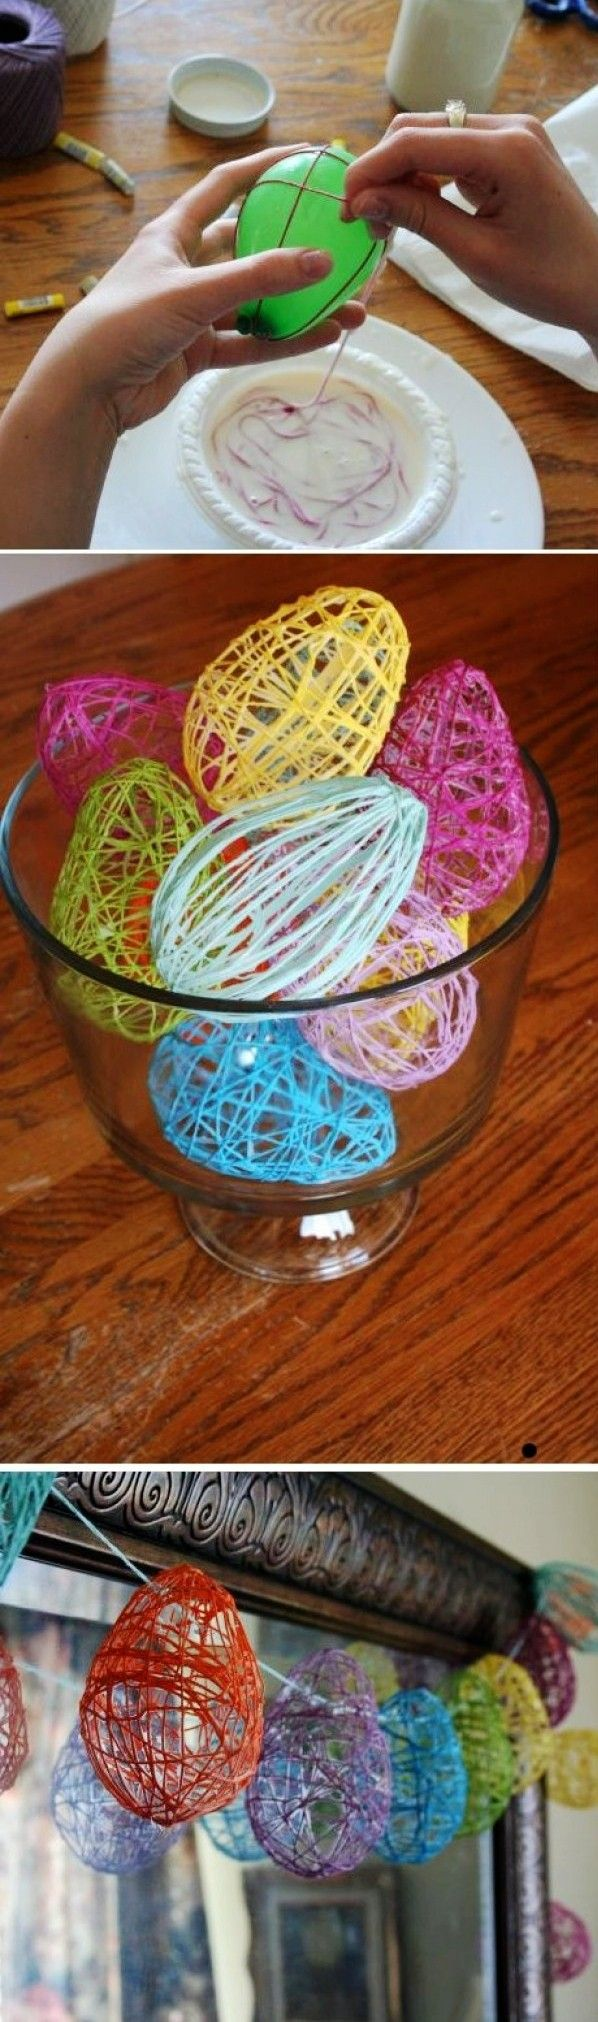 DIY Crochet Easter Egg Garland, Easter wreath ideas, DIY Easter craft decoration ideas, Creative Easter decor ideas #Easter #ideas #holiday www.loveitsomuch.com